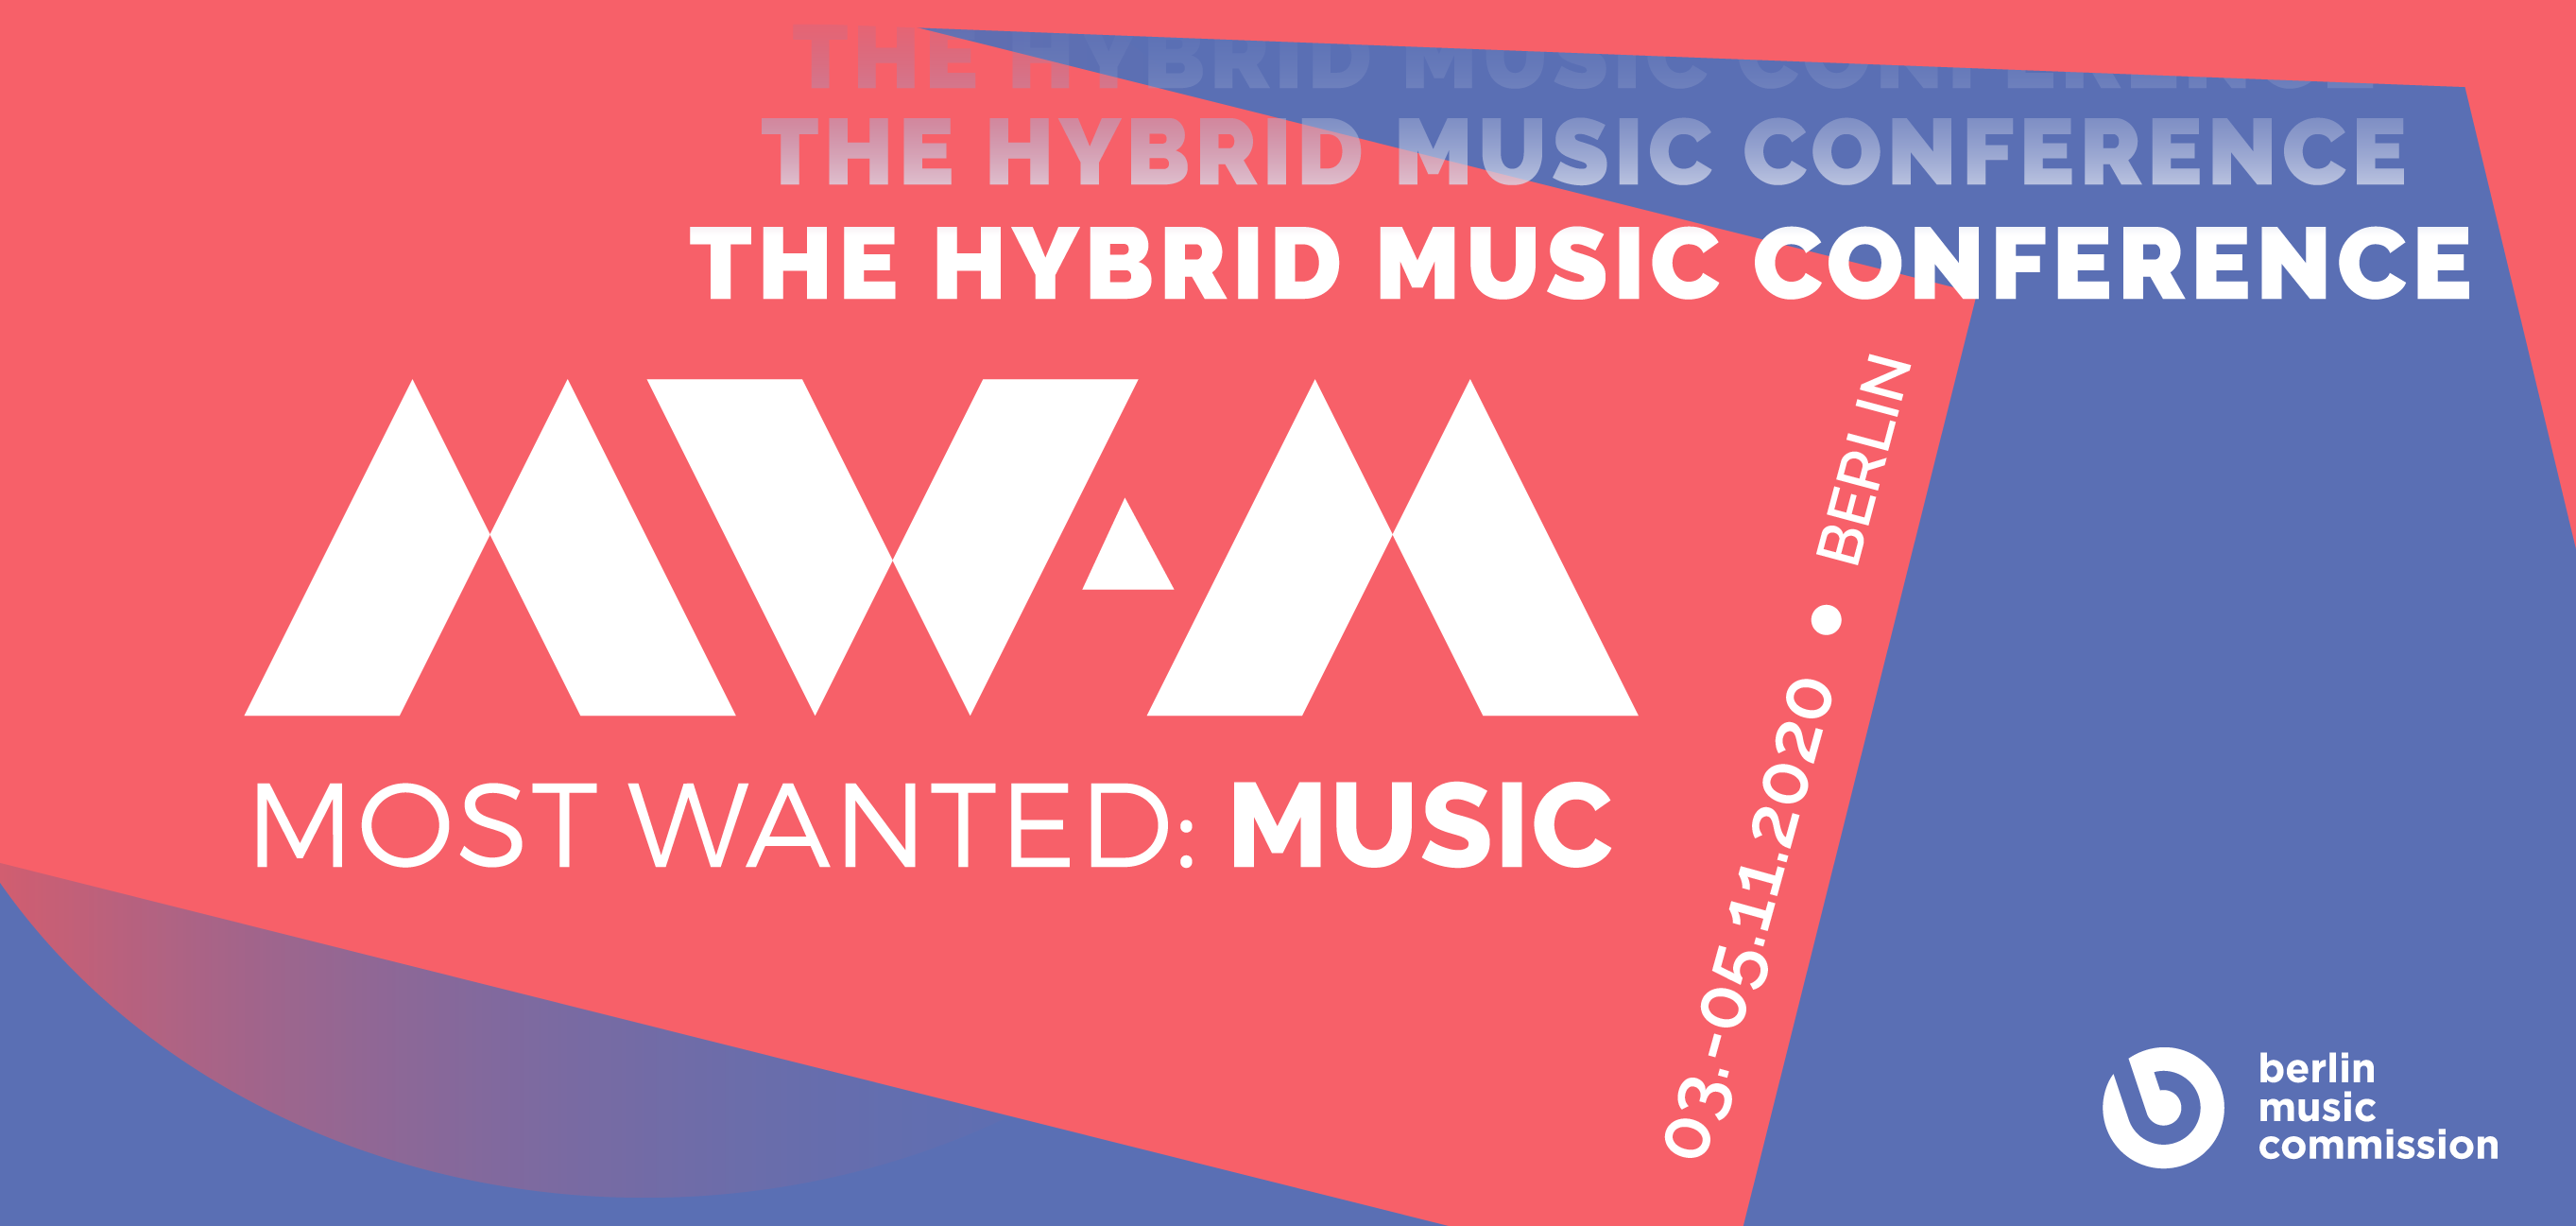 Most Wanted: Music 2020 - Hybrid Music Conference